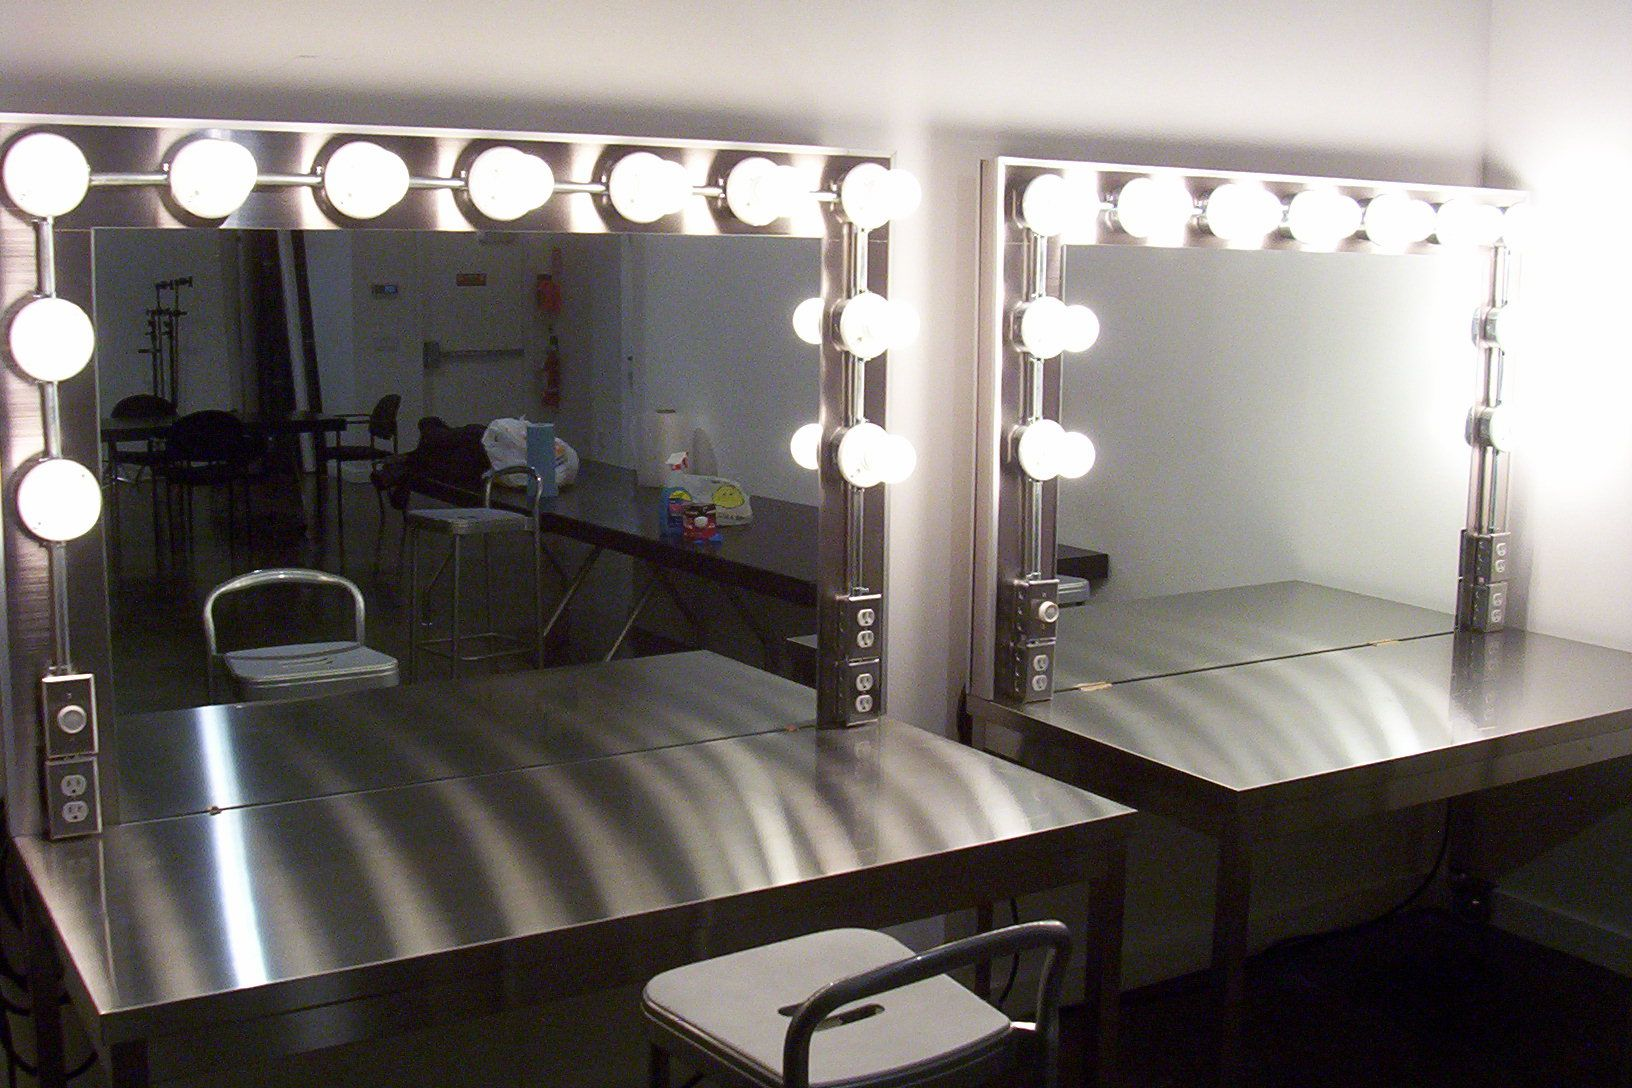 Vanity Makeup Set With Lights : makeup table with lights - Google Search vanity Pinterest Makeup rooms, Vanities and Lights